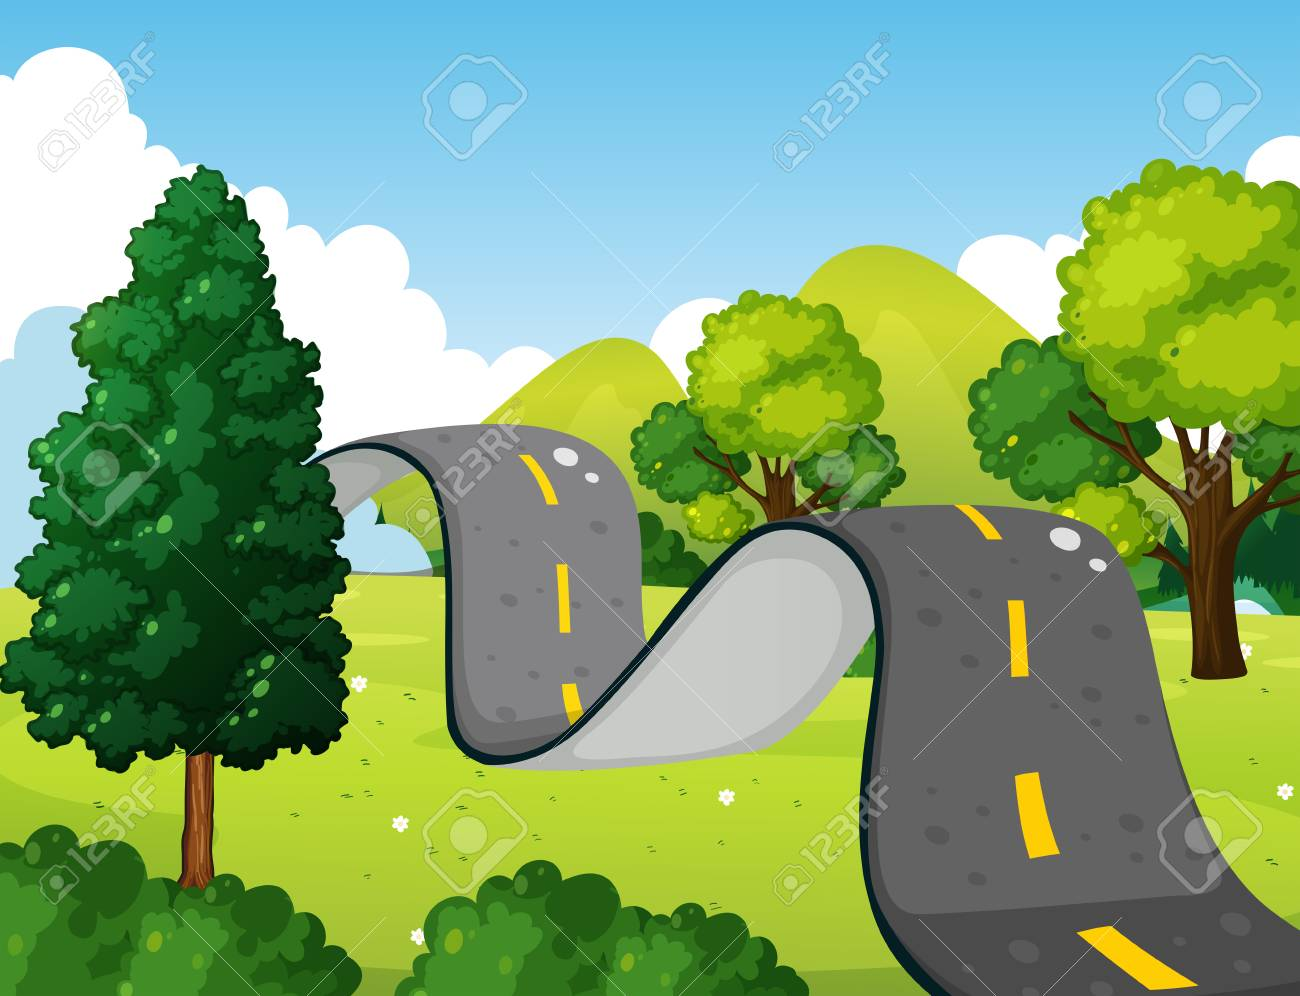 Scene with bumpy road in the park illustration.